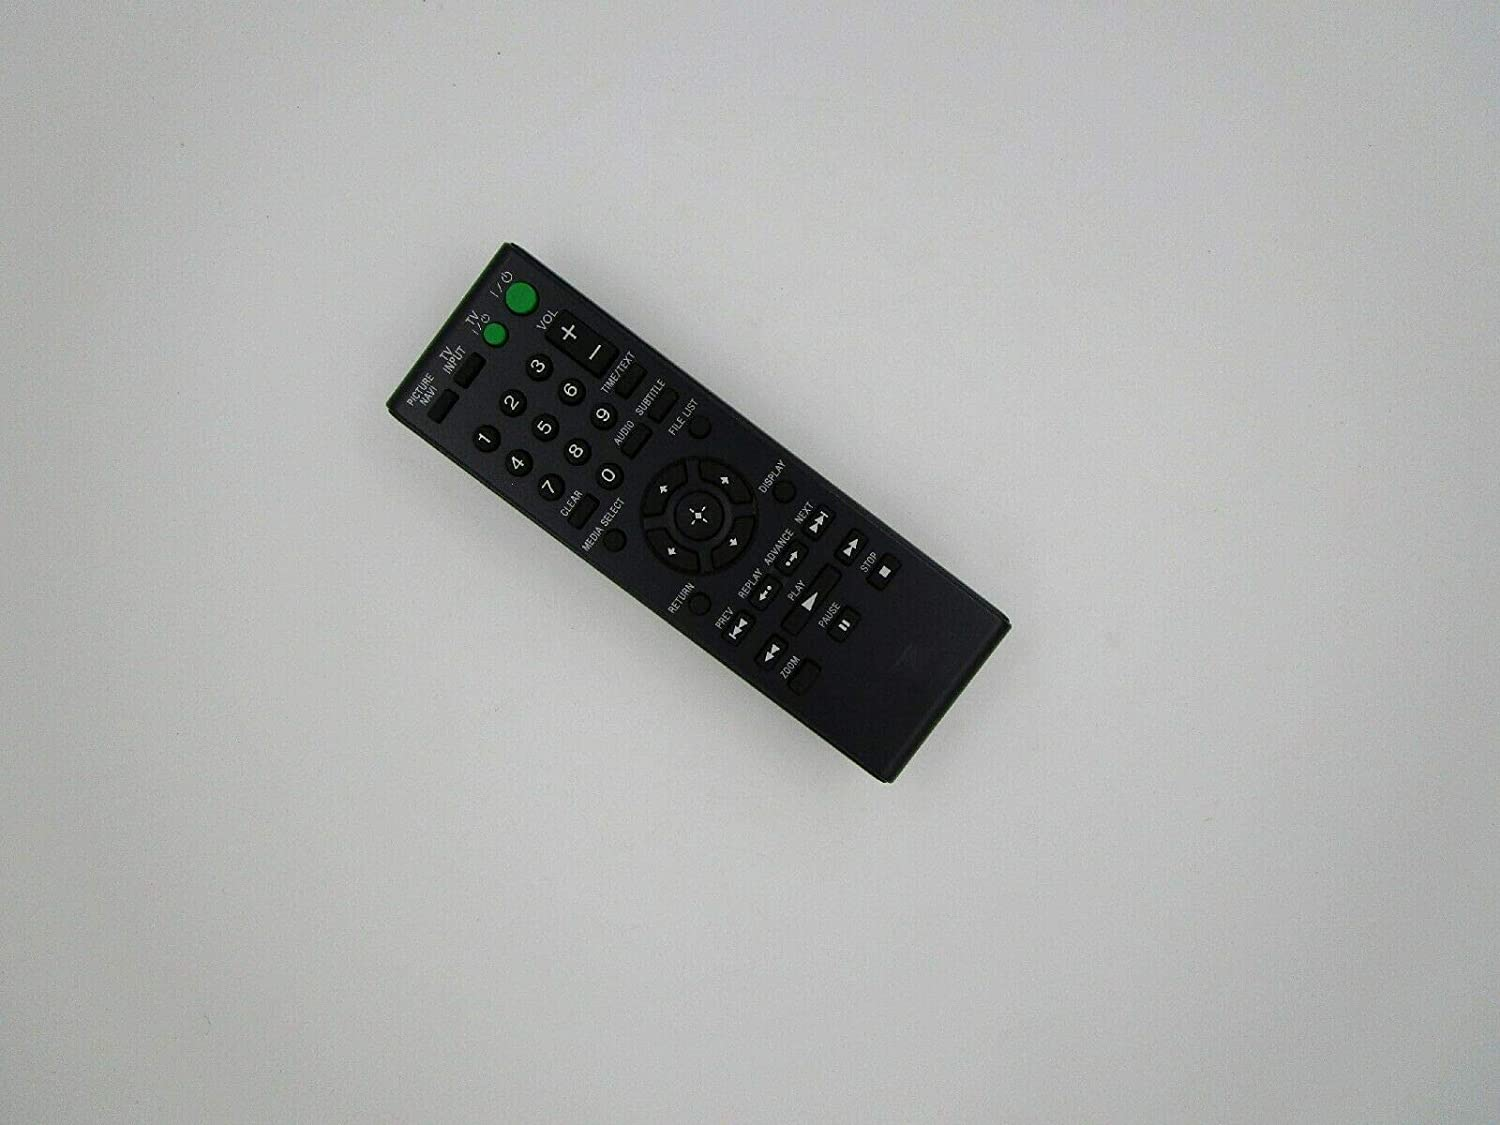 Replacement Remote Control for Sony SMP-N100 SMP-N200 Network Media Streaming Player